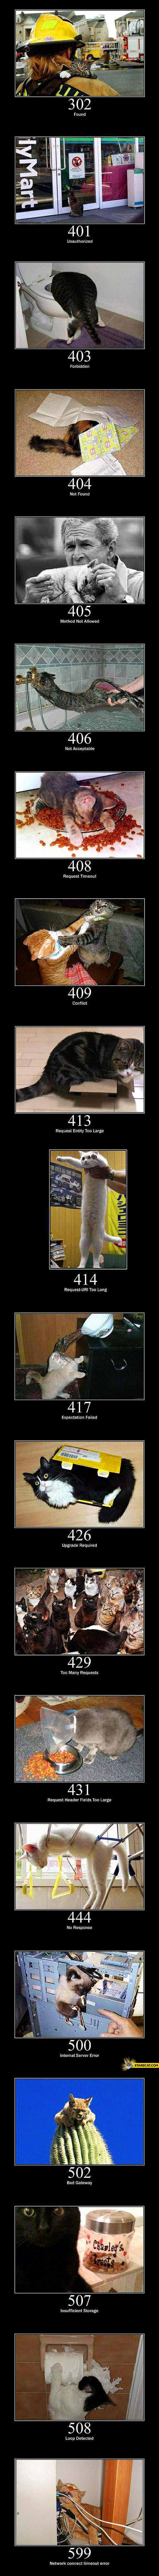 Cats as http errors